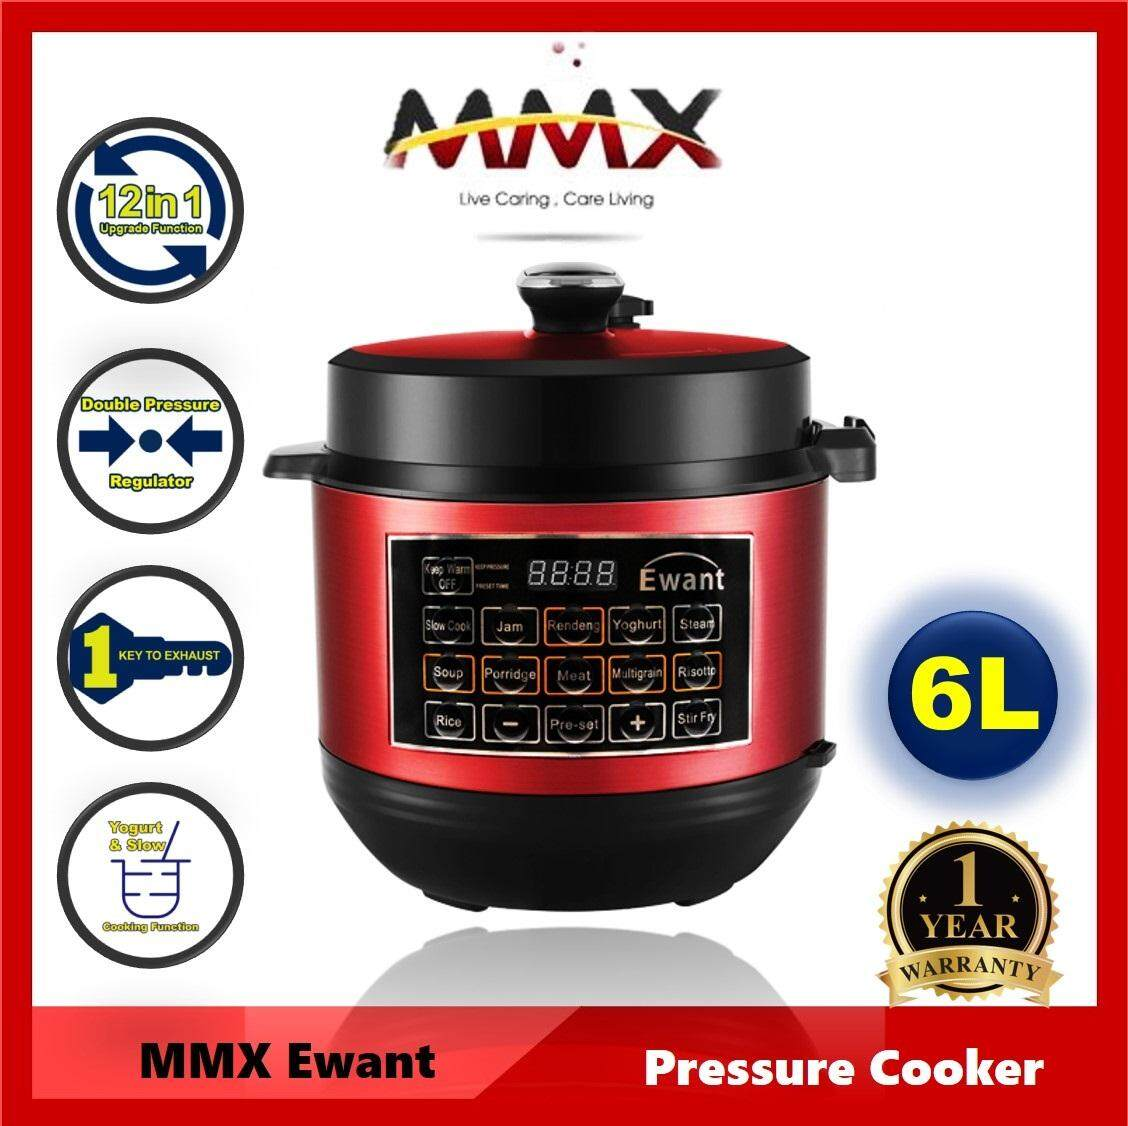 MMX Ewant 6L 12-in-1 Electric Smart Pressure Cooker (With Rendang Function)